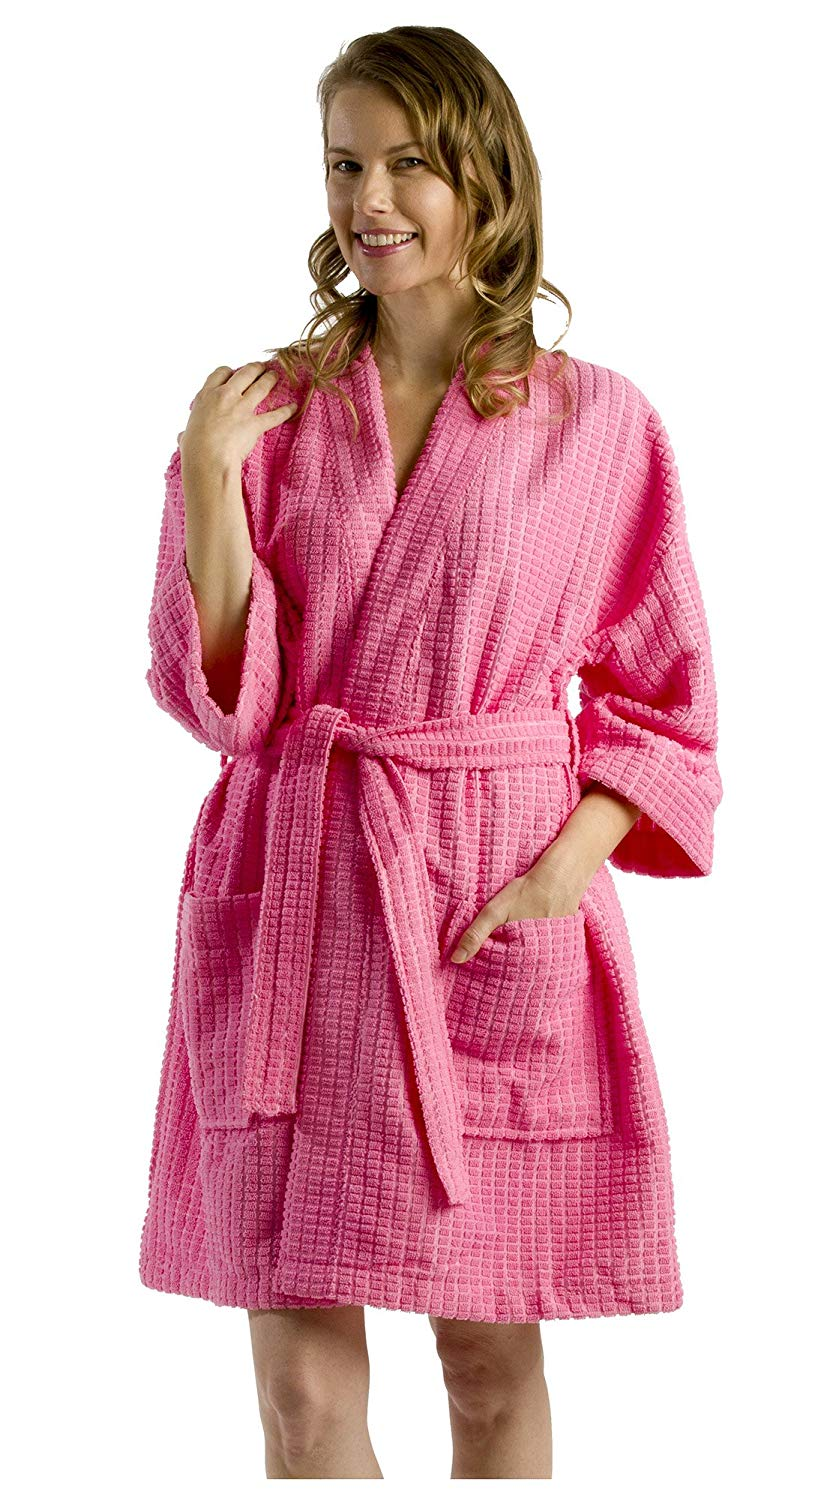 945f6d8599 Get Quotations · Personalized Thigh Length Kimono Women s Robe